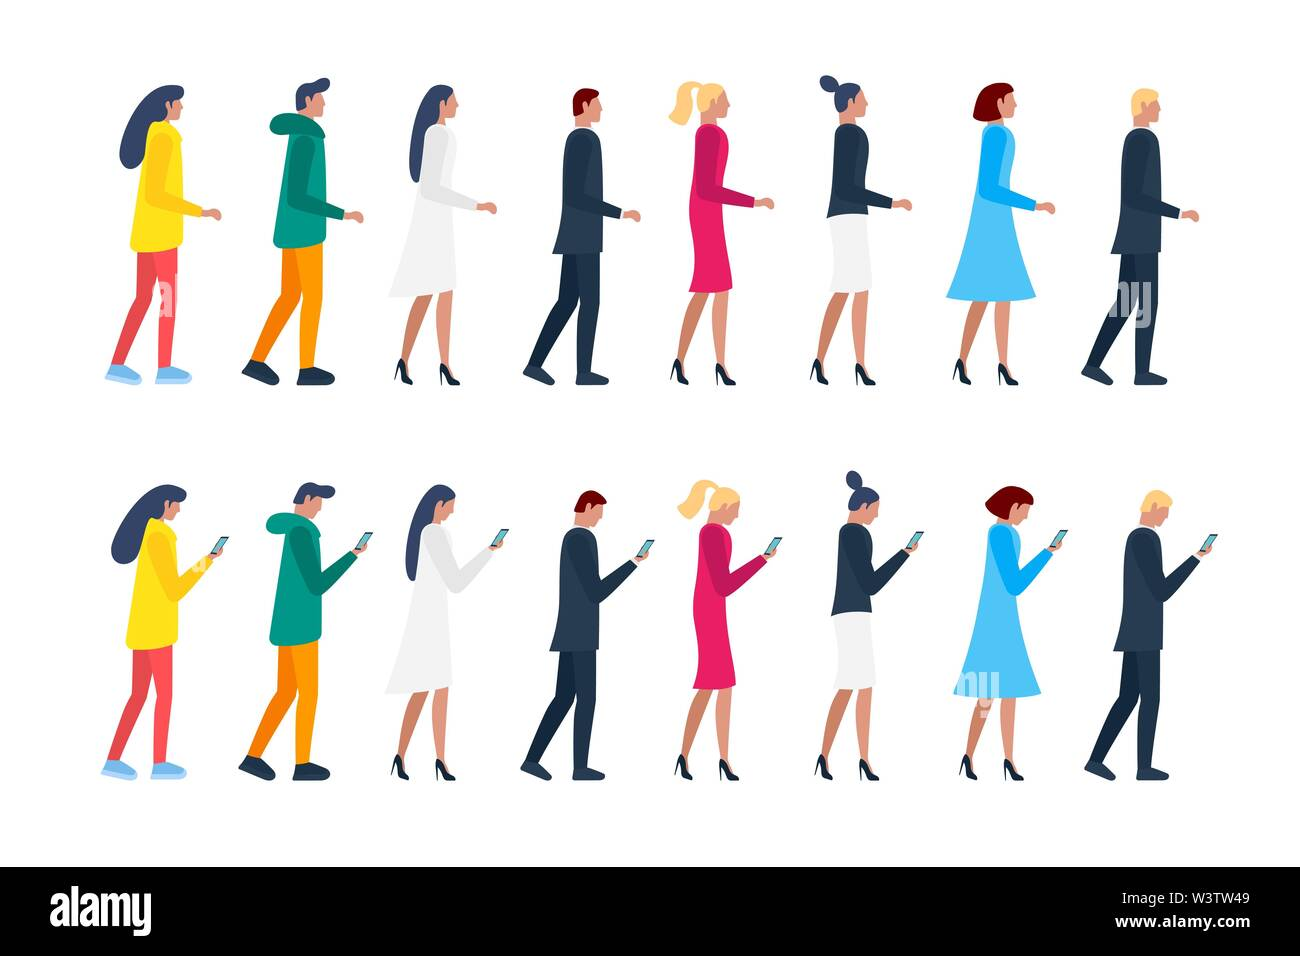 Crowd men and women walking and holding smartphones. Male and female characters group using mobile phones. Vector flat person illustration - Stock Image